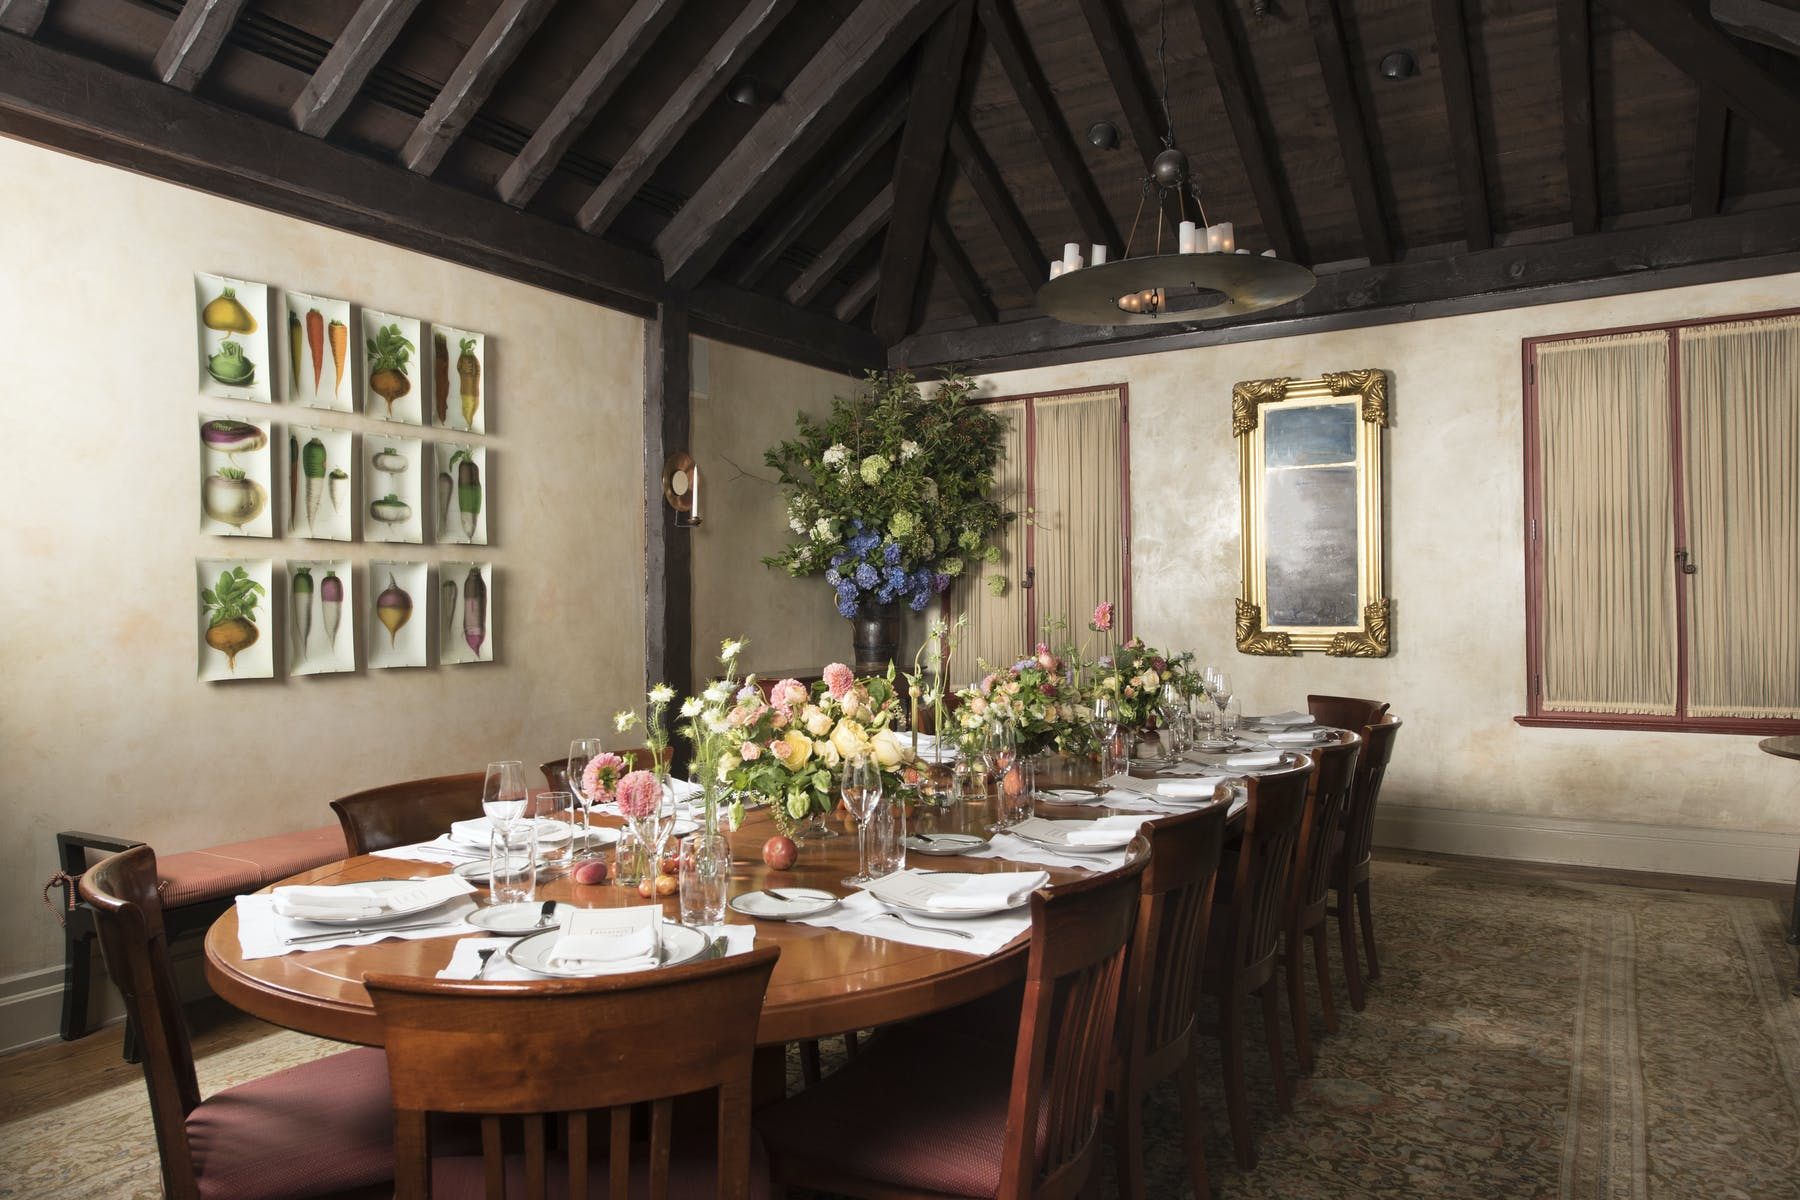 private dining rooms | Private Dining Room NYC | Gramercy Tavern